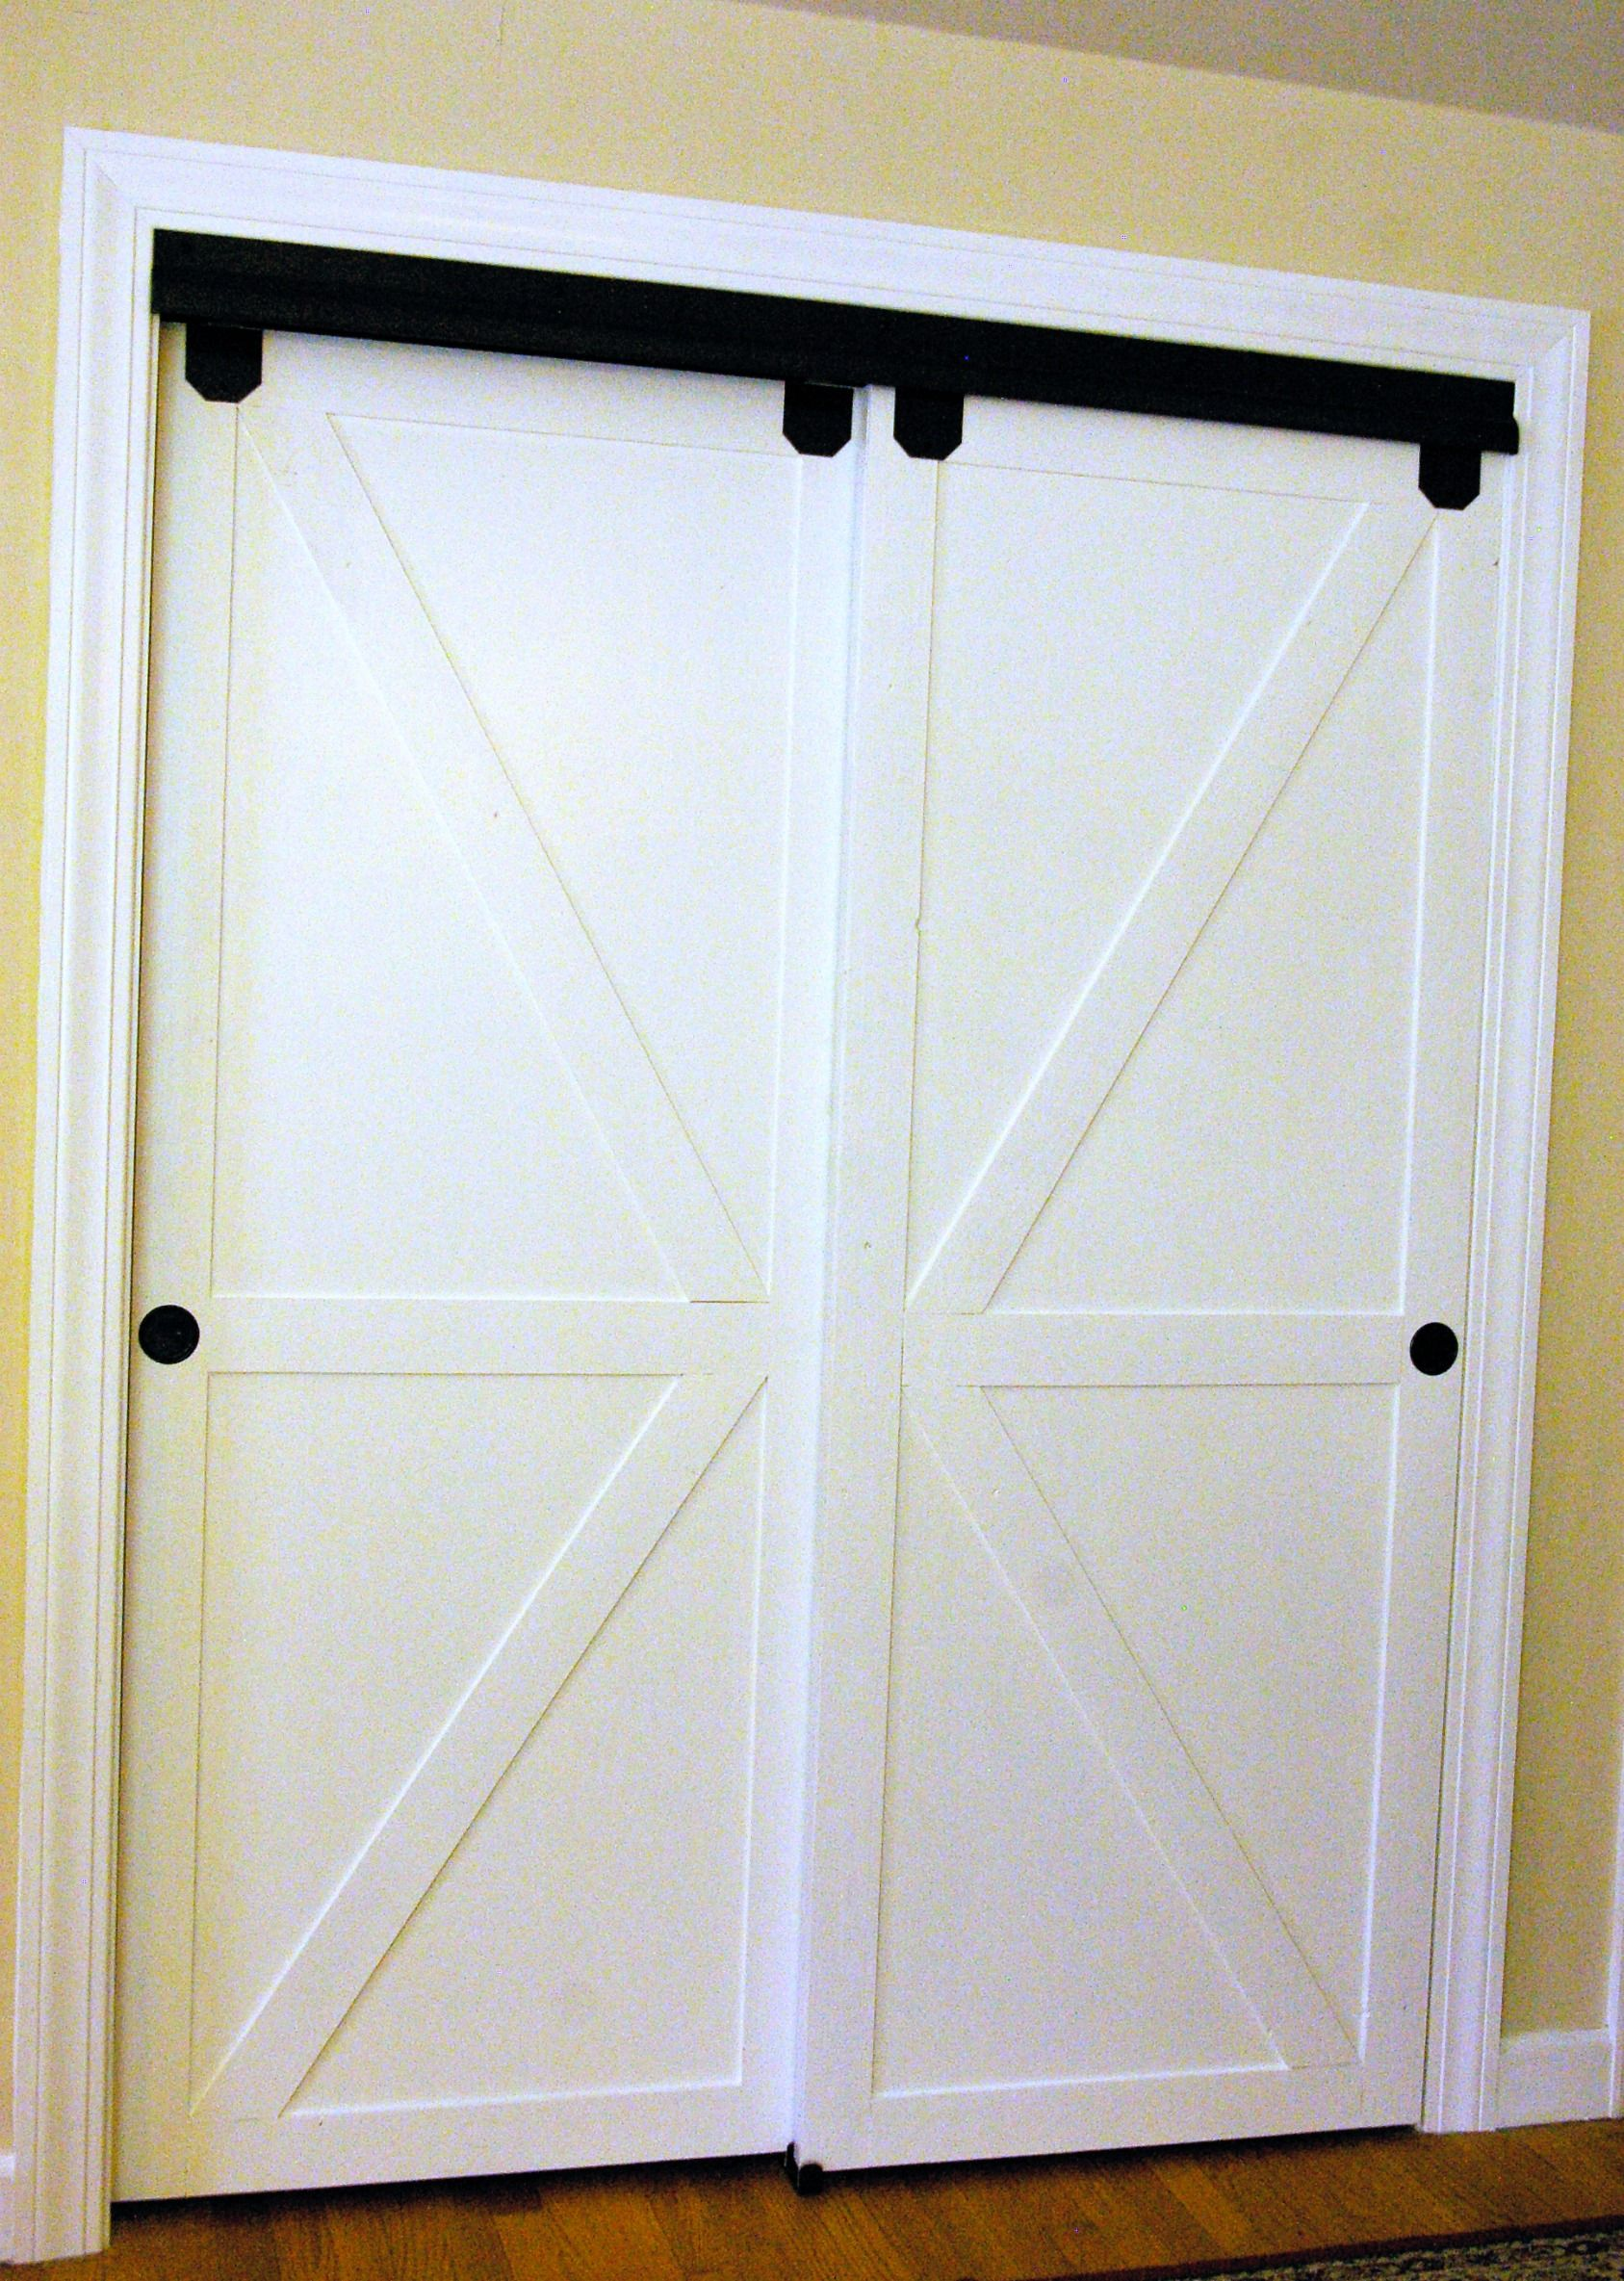 Diy Bypass Barn Door Hardware single track bypass© barn door hardware kit lets 2 doors overlap